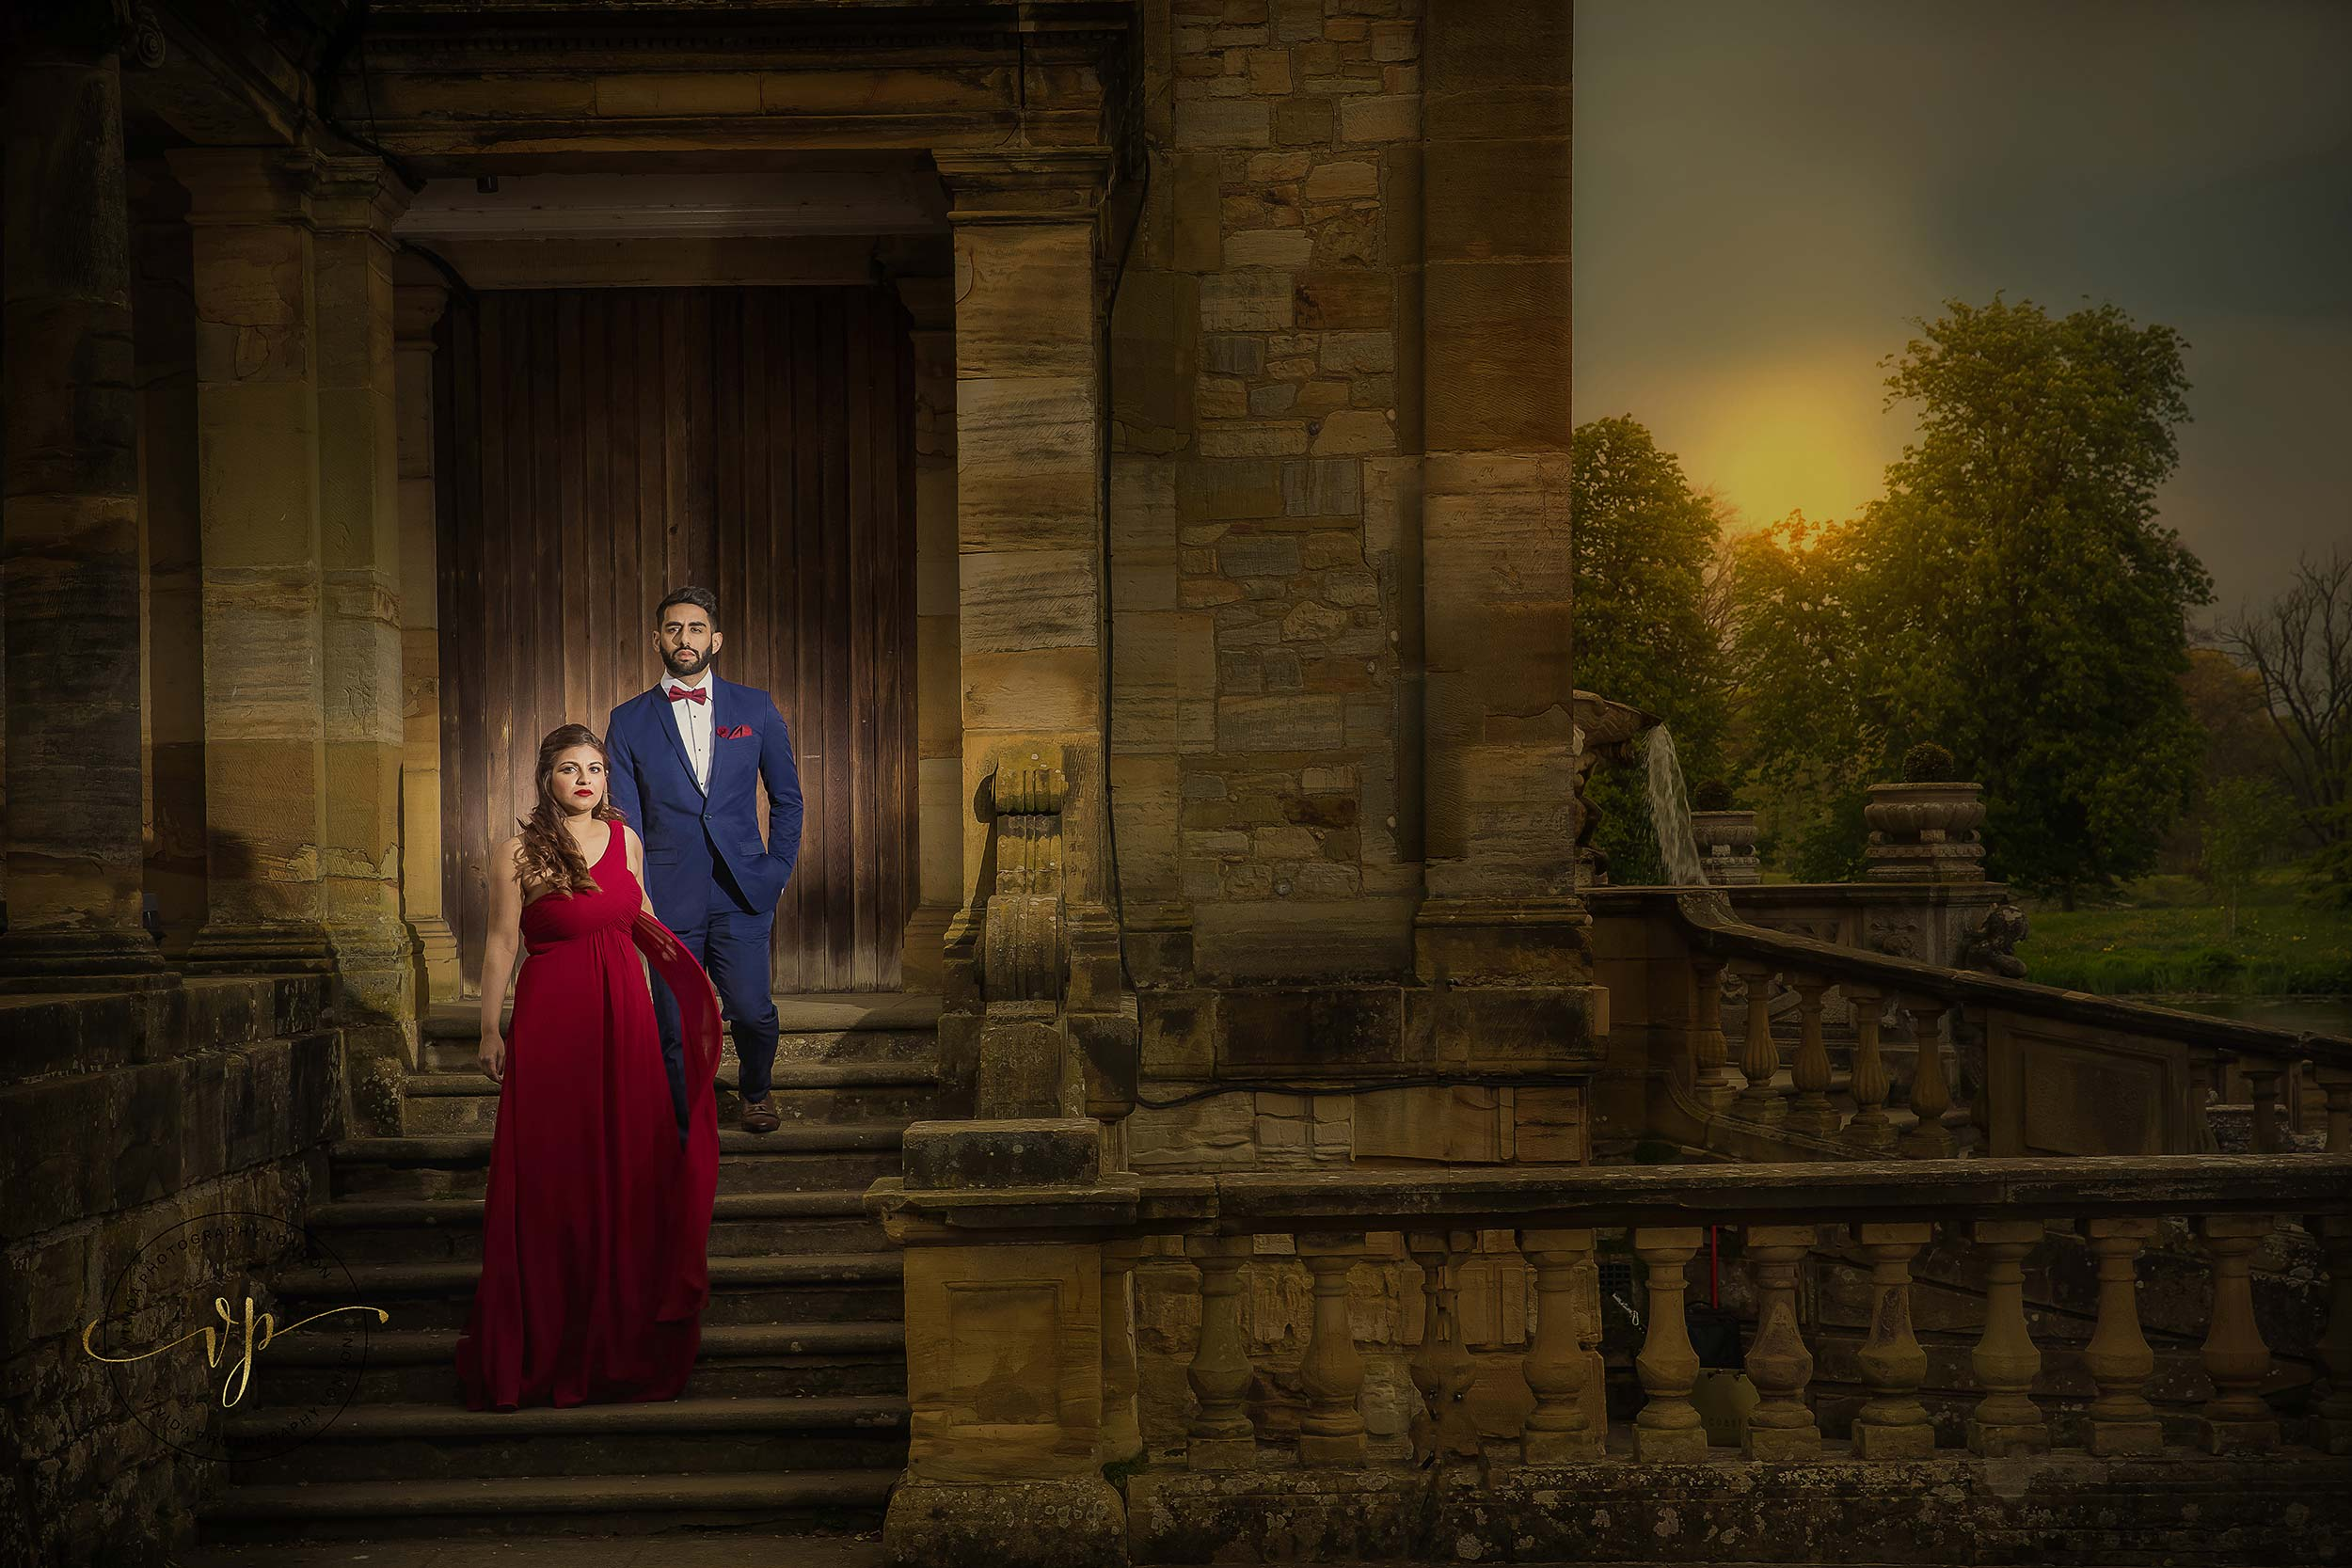 pre+wedding+photography+london+64.jpg